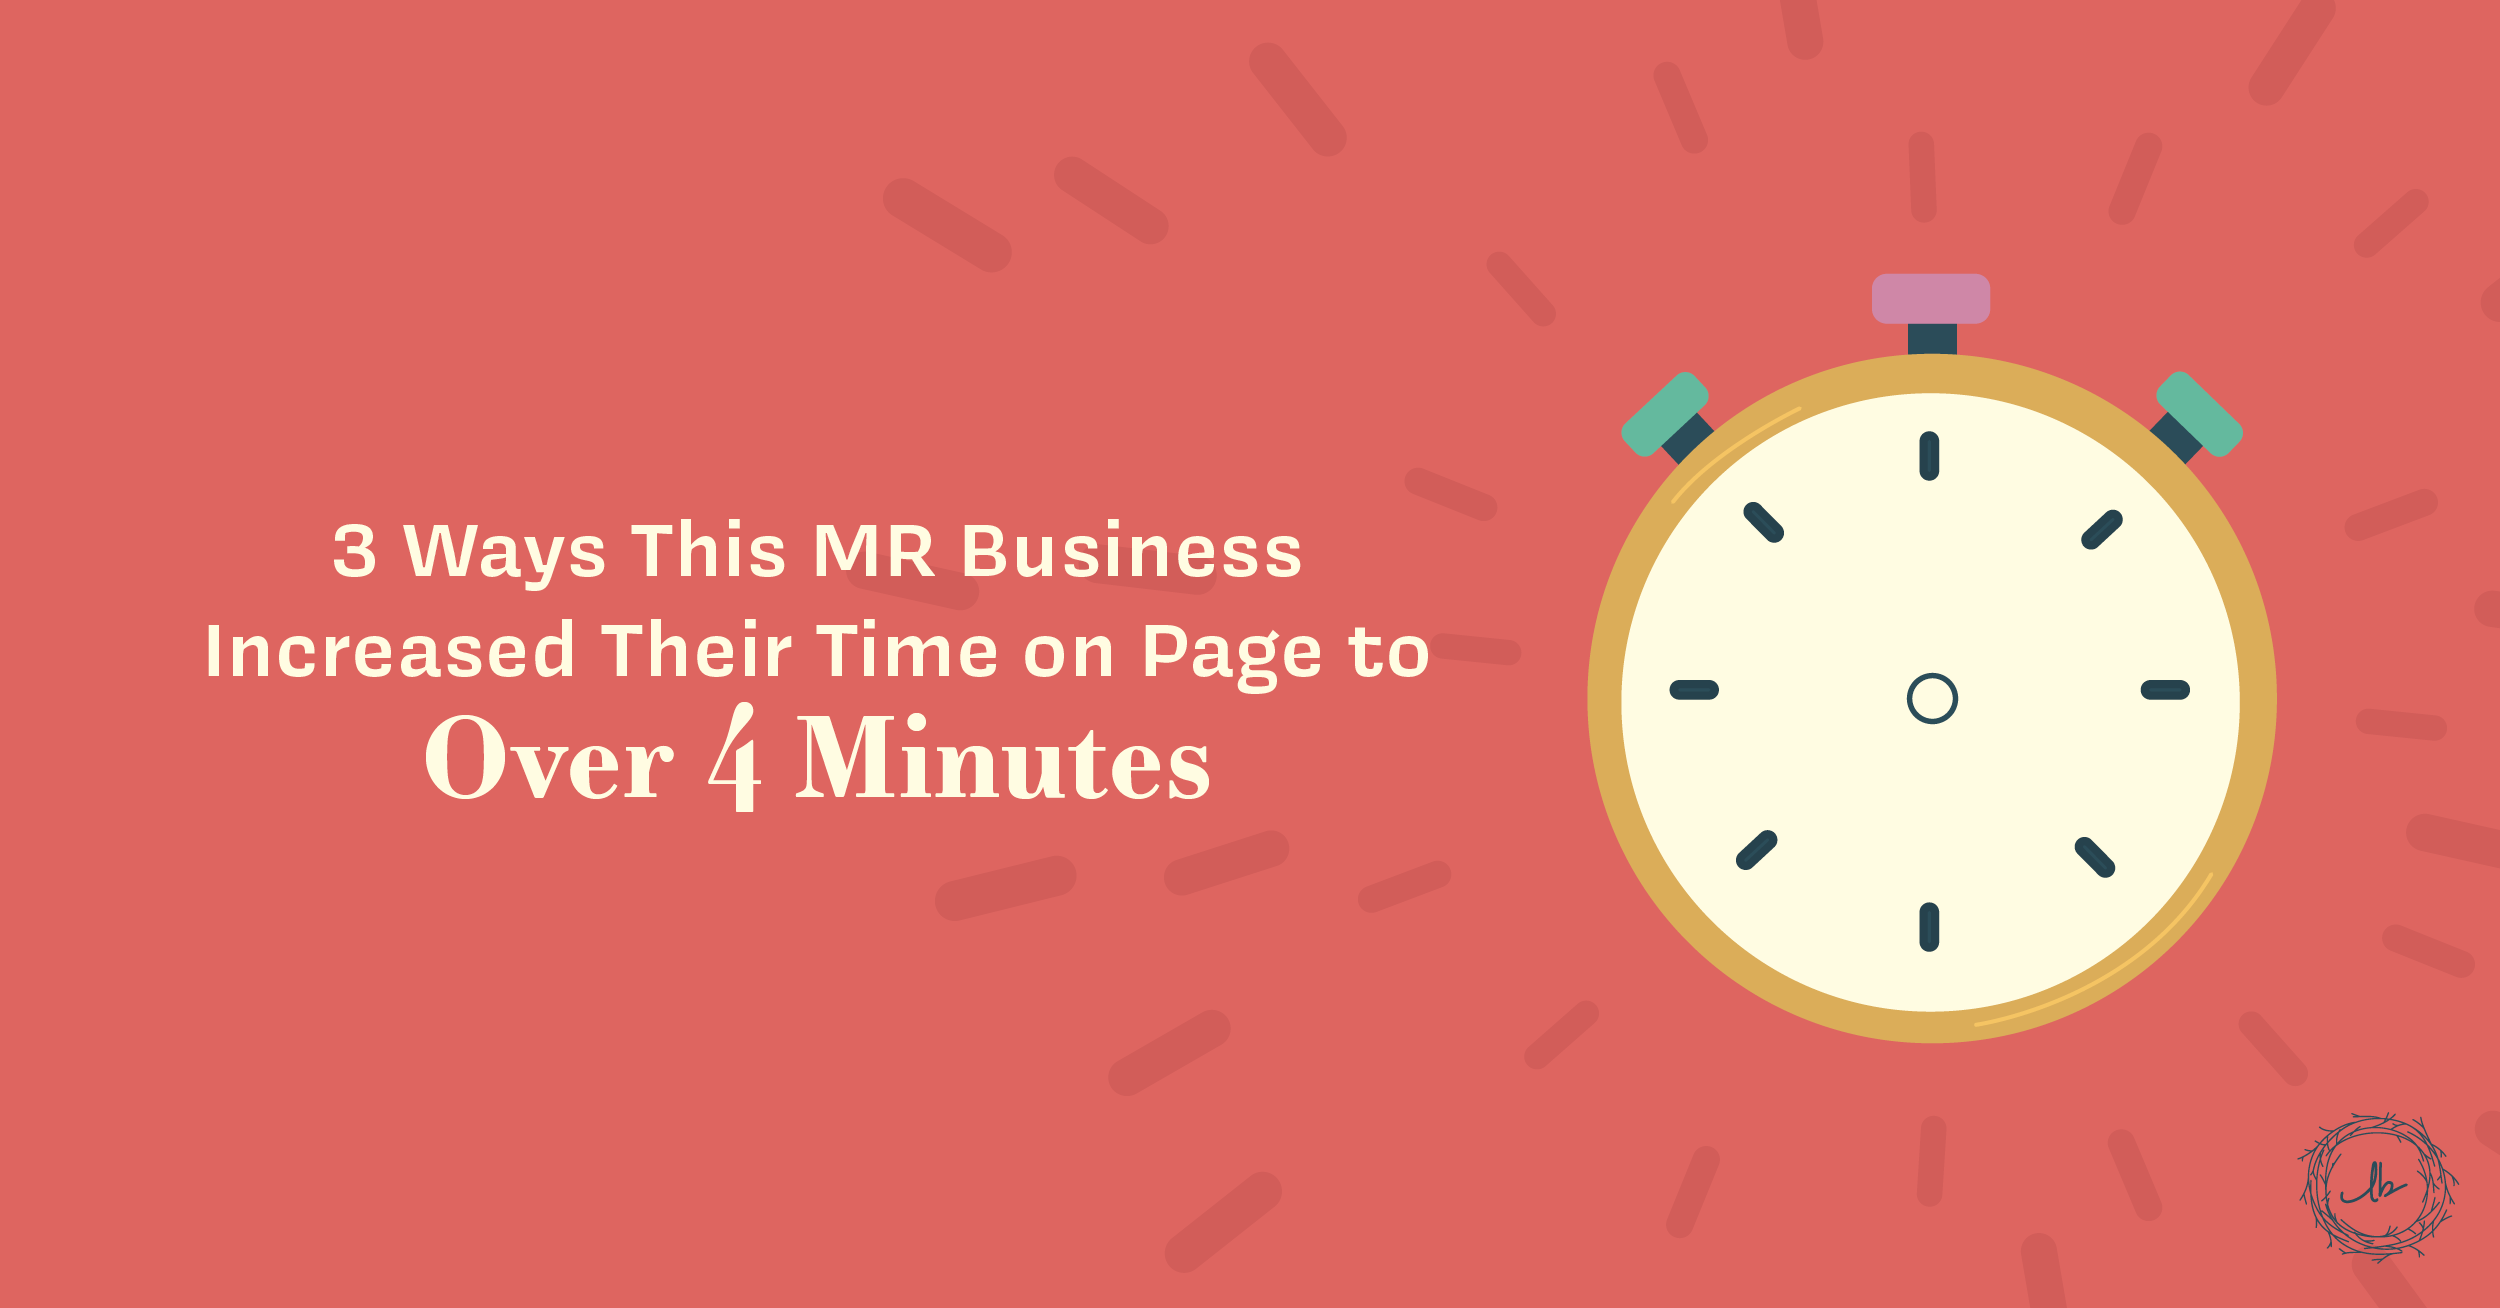 3 Ways This MR Business Increased Their Time on Page to Over 4 Minutes